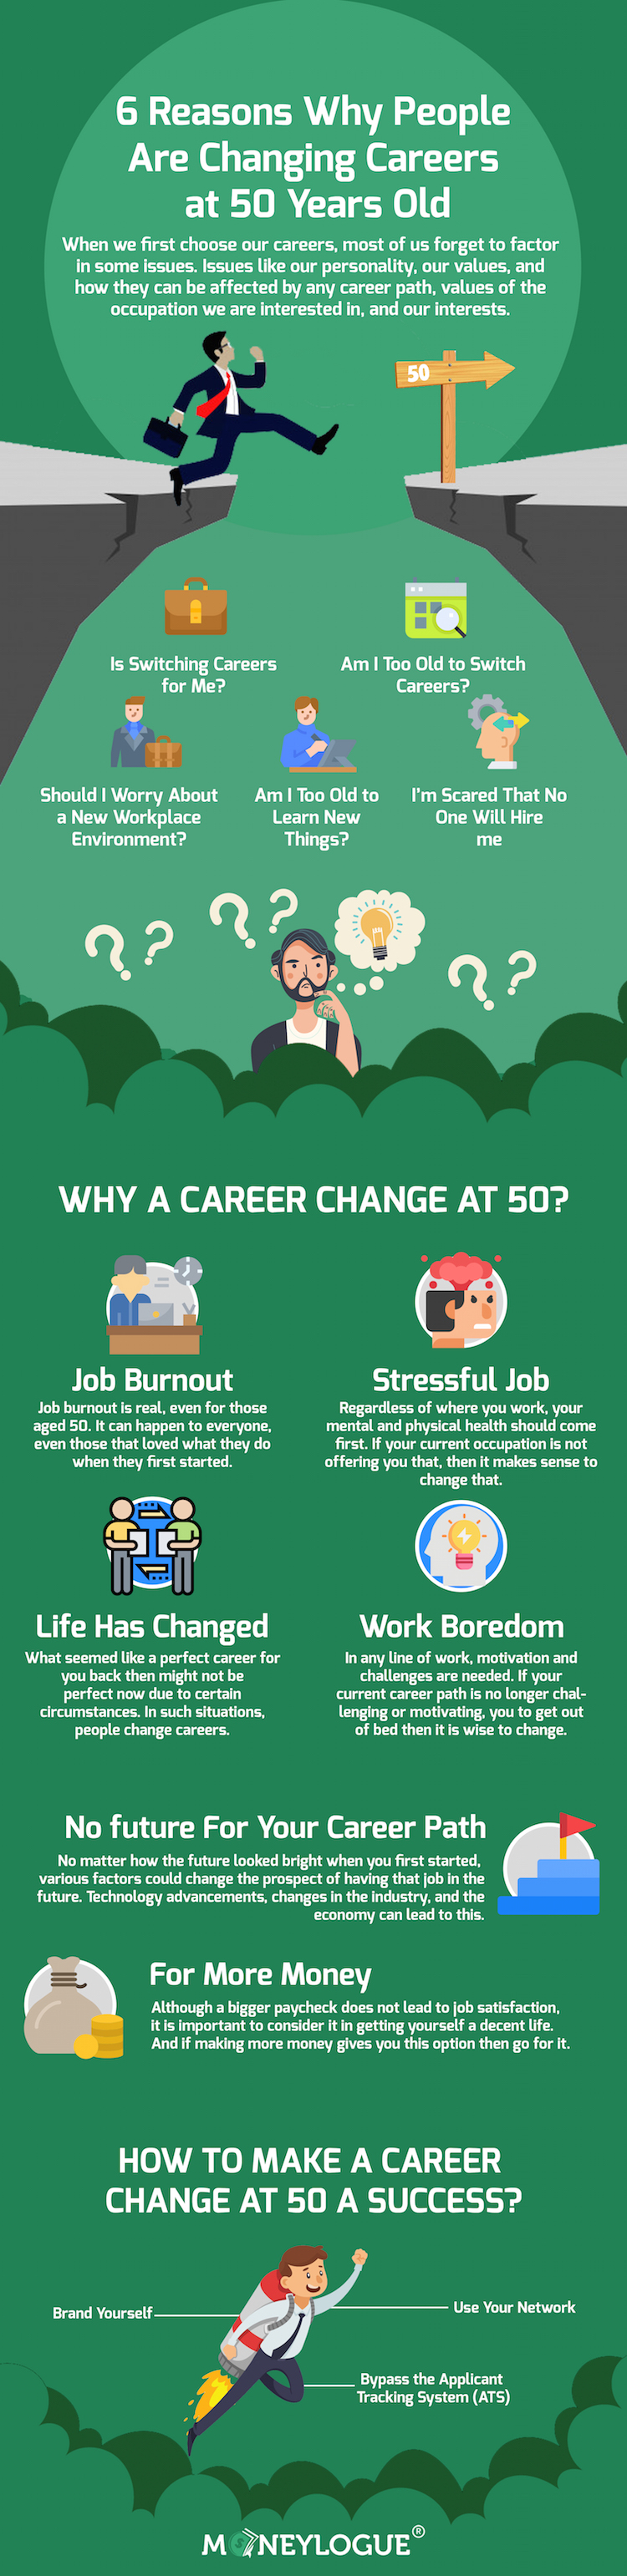 Why Change Career at 50 Years Old